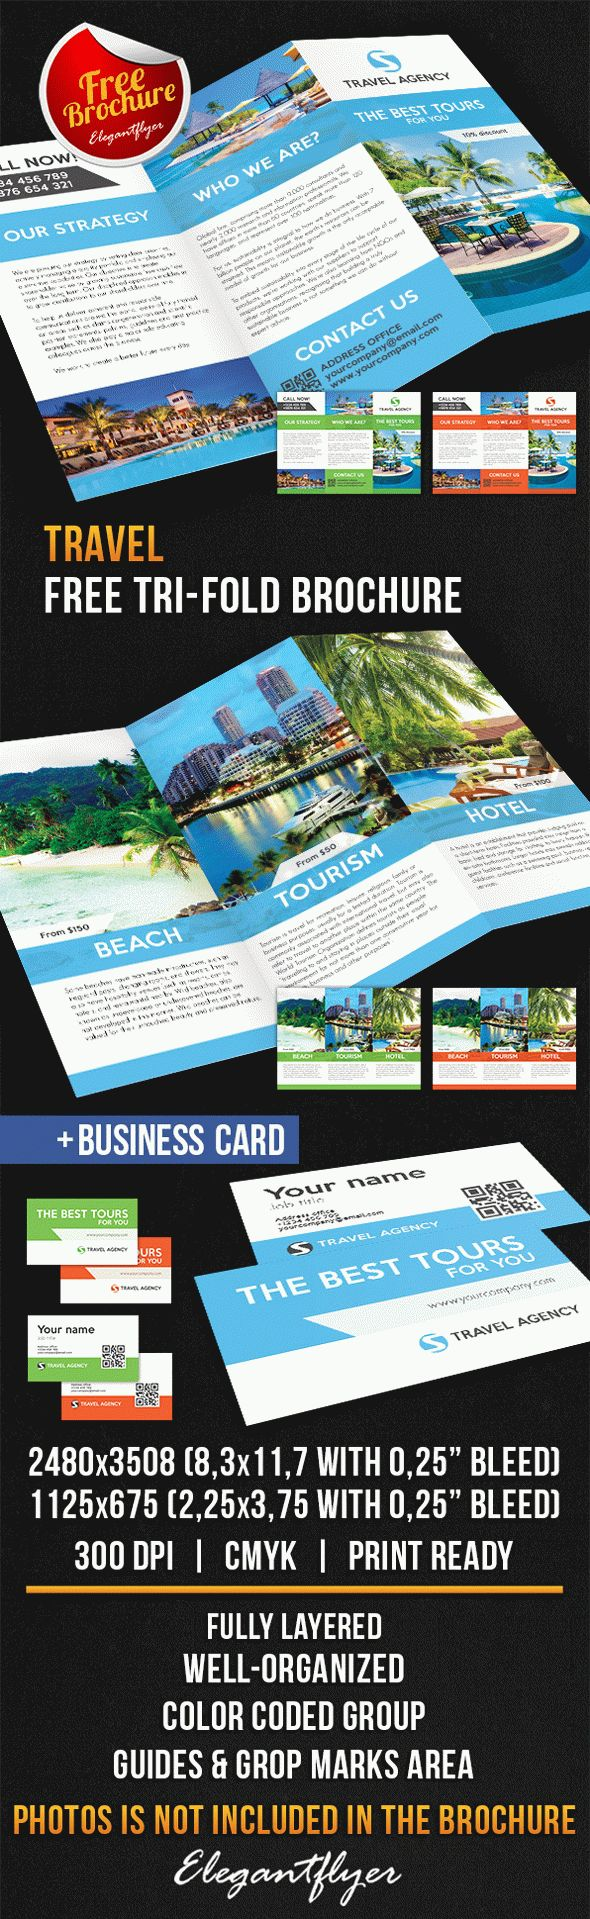 Travel tri fold brochure free psd template by elegantflyer for Cruise brochure template